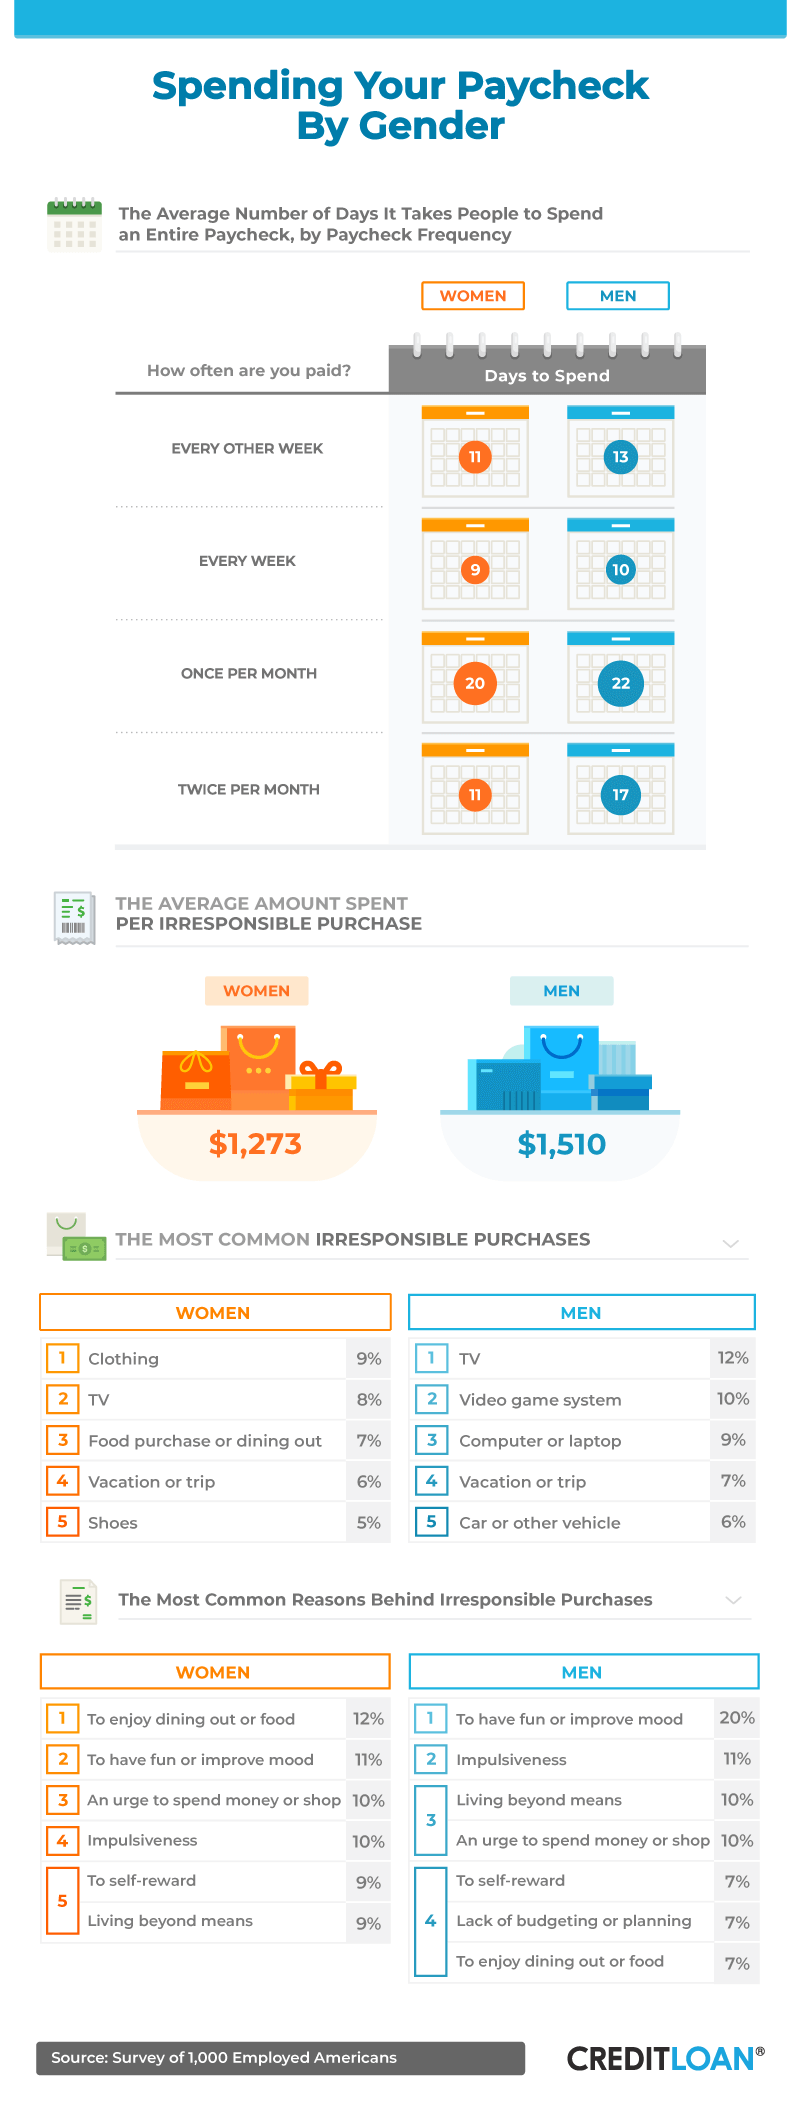 Spending Your Paycheck by Gender